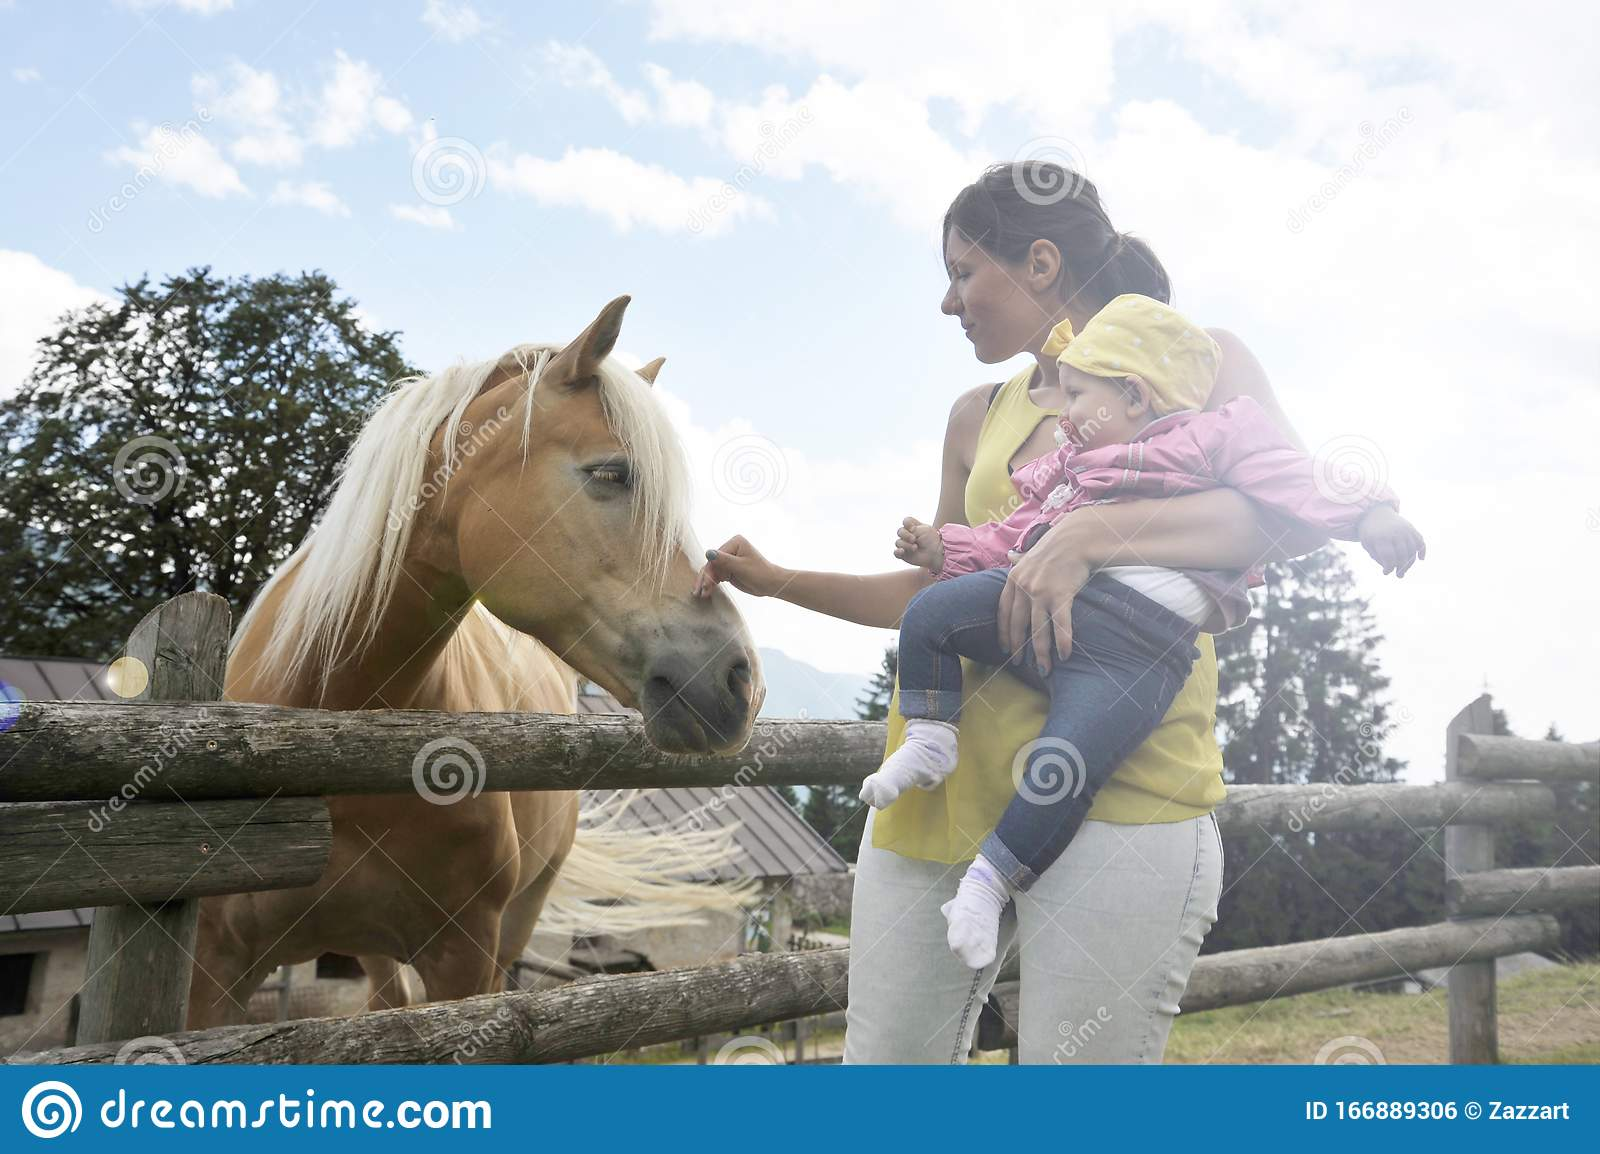 Mom With Her Daughter Are Meeting A Horse In The Educational Farm Happy Childhood Concept Pet Therapy Concept In Countryside Stock Photo Image Of Farm Equine 166889306